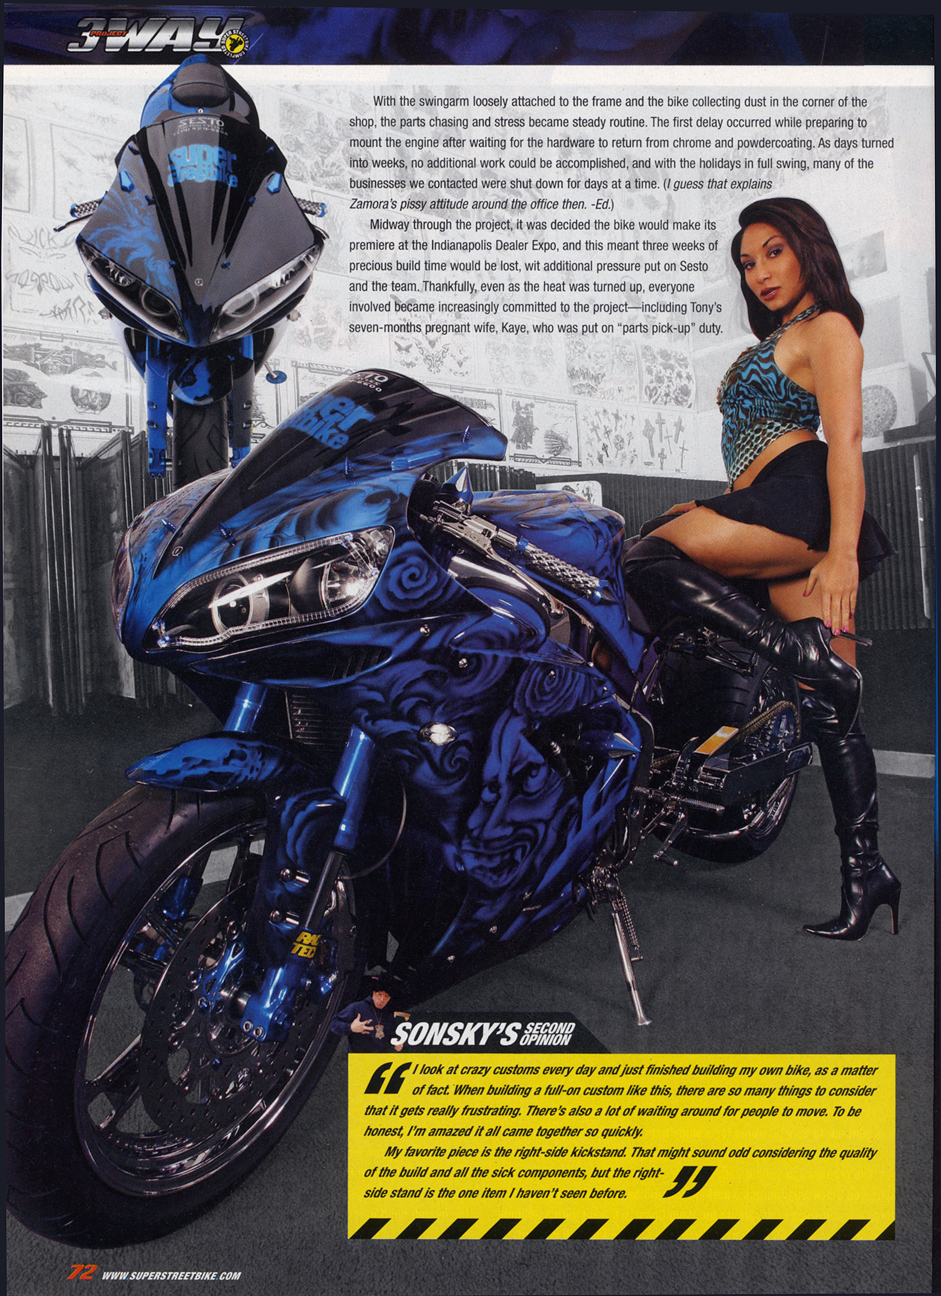 Gripace Digital Motorcycle Switches Magazine Feature Bikes